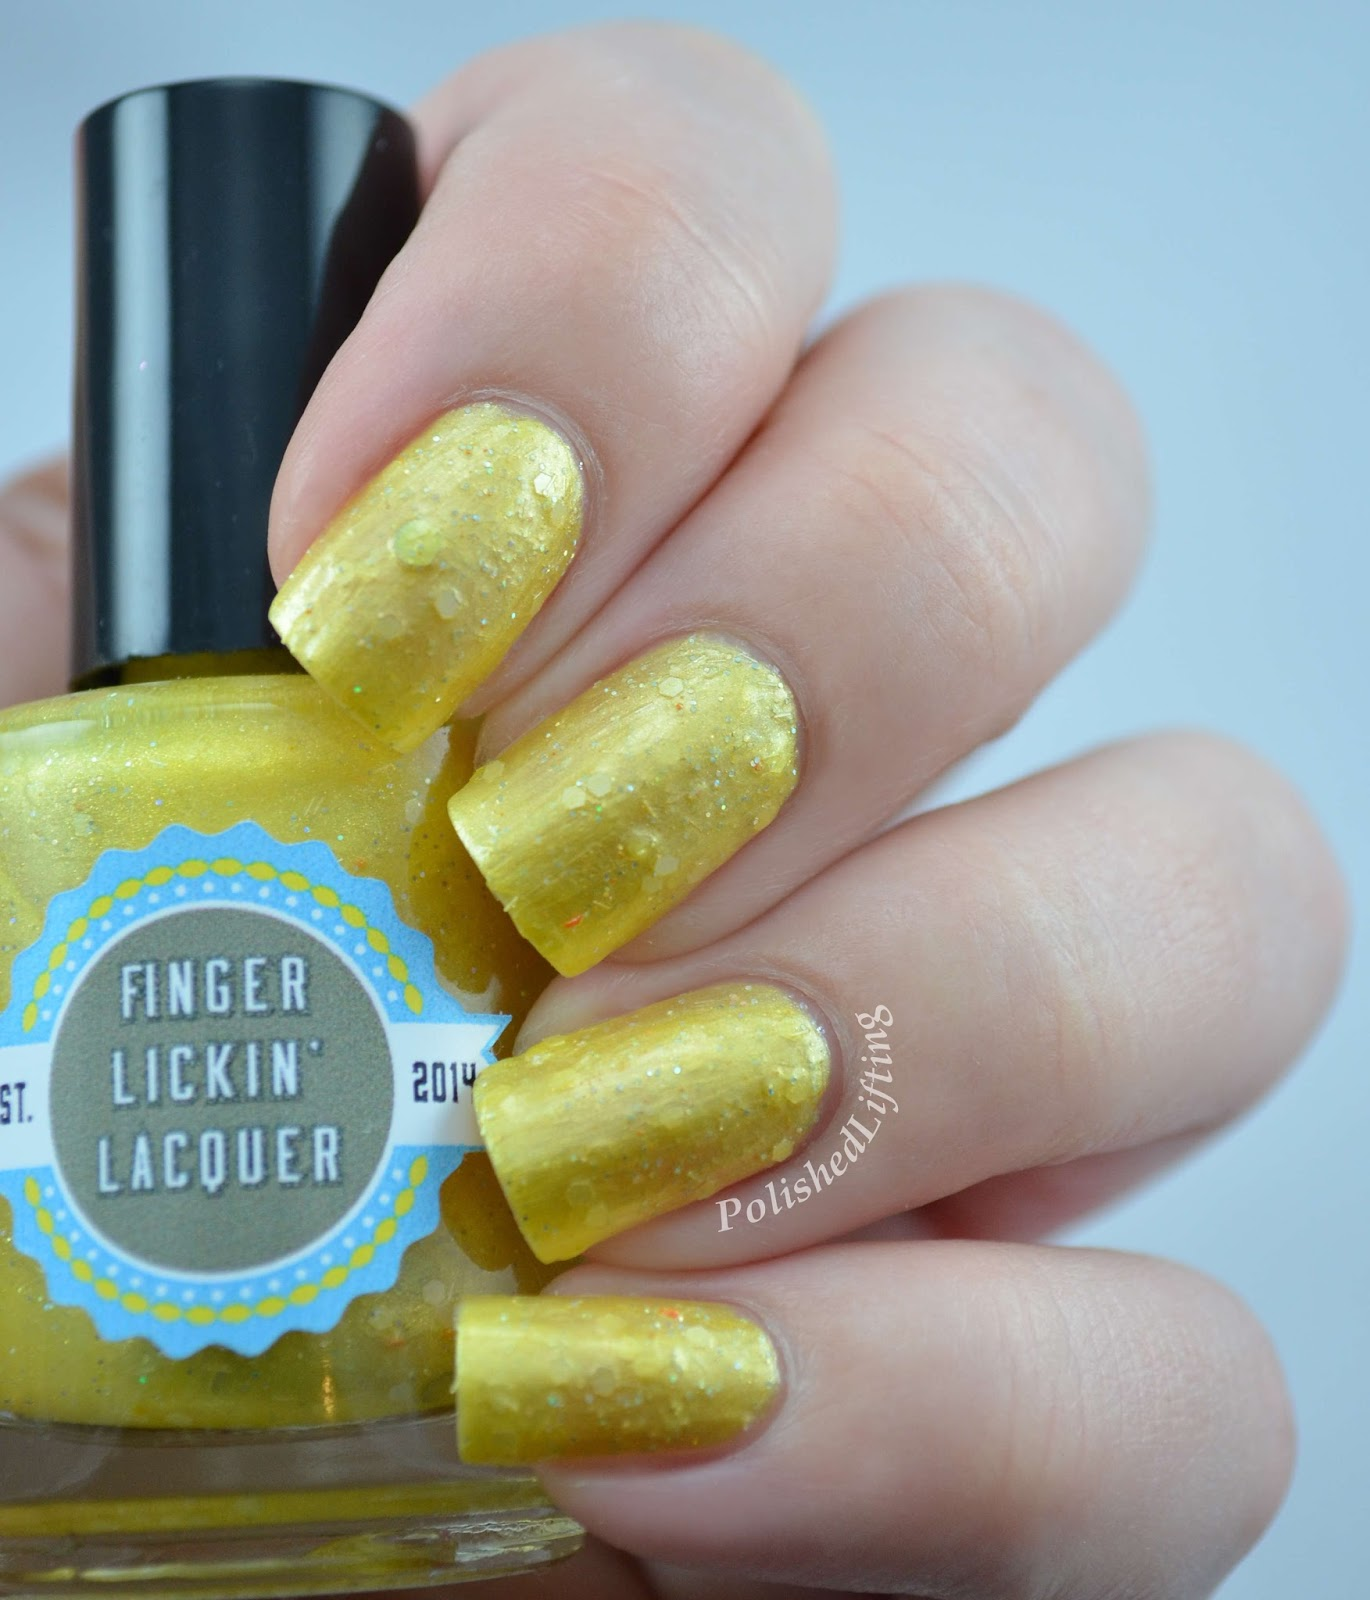 Finger Lickin' Lacquer Made in Heaven